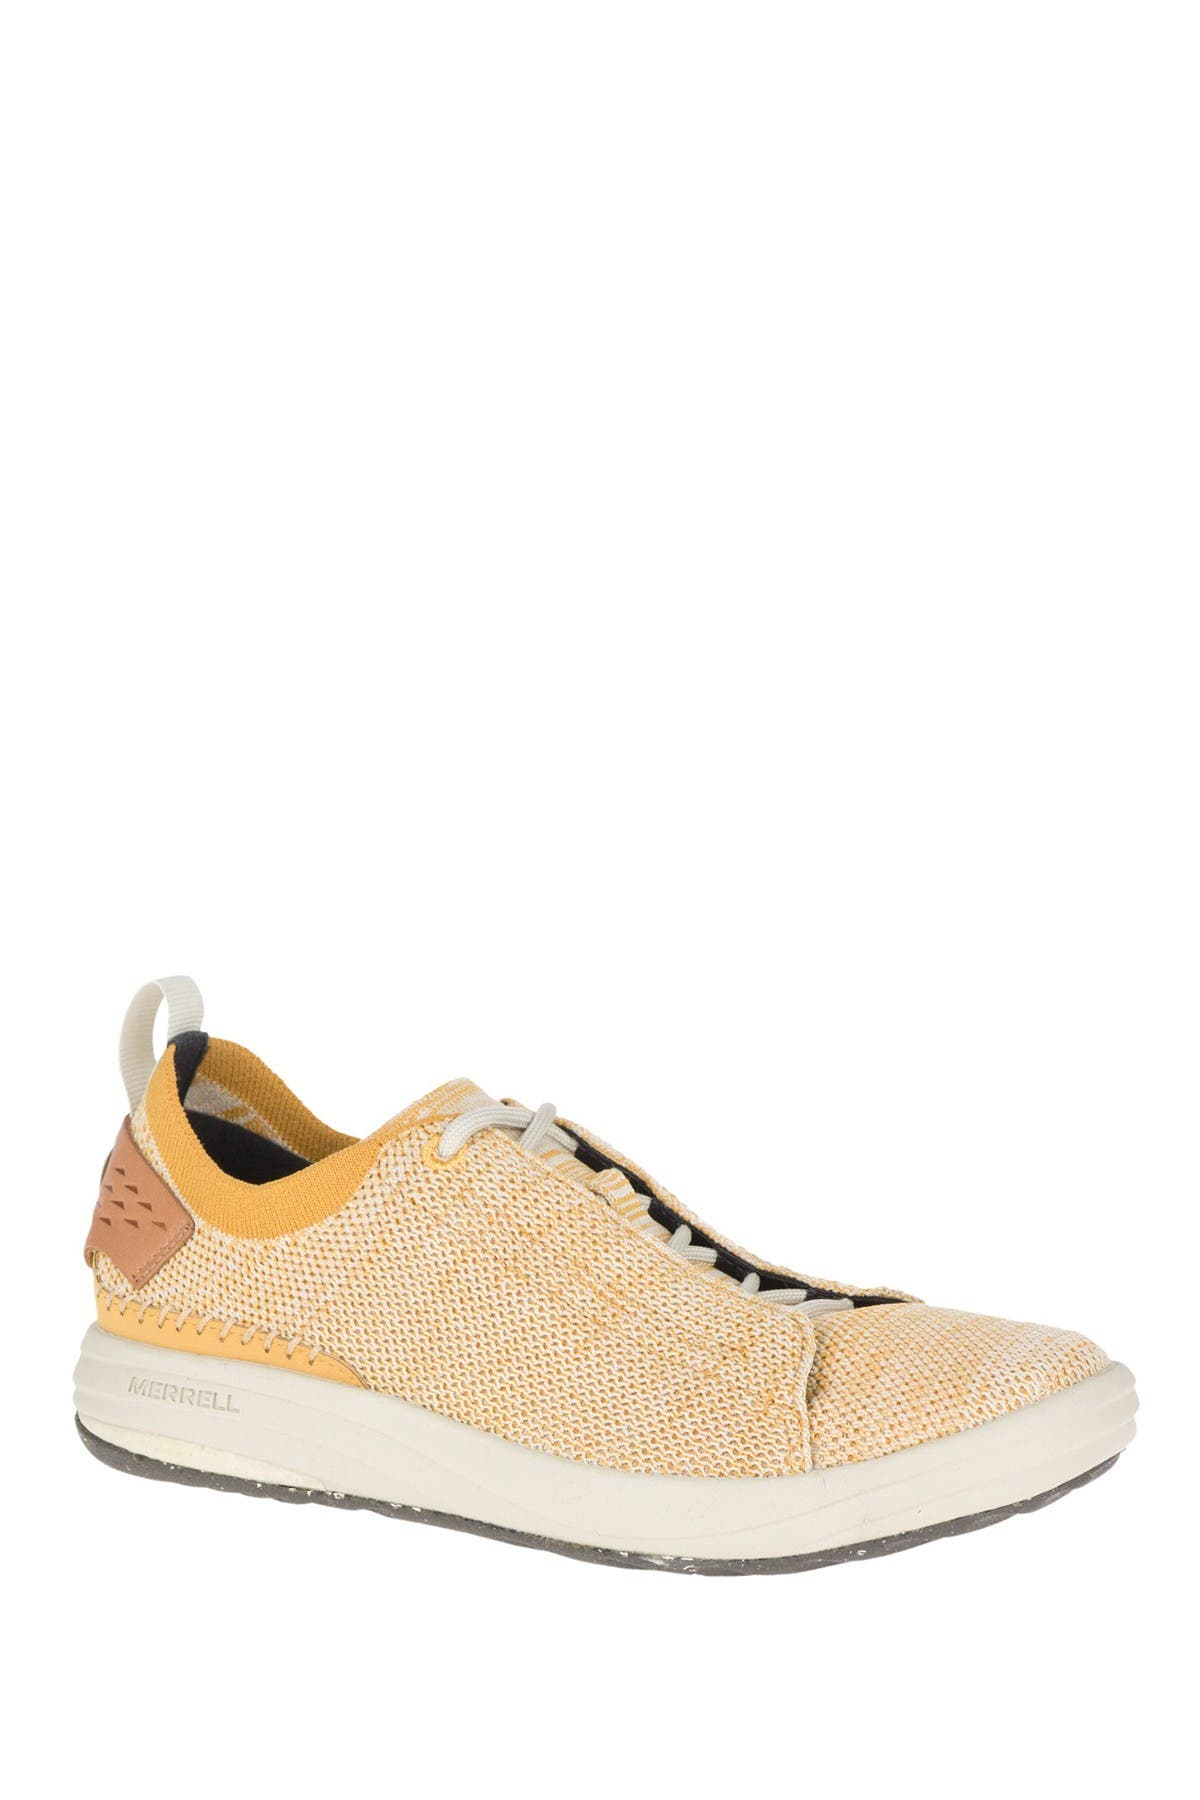 Image of Merrell Gridway Sneaker